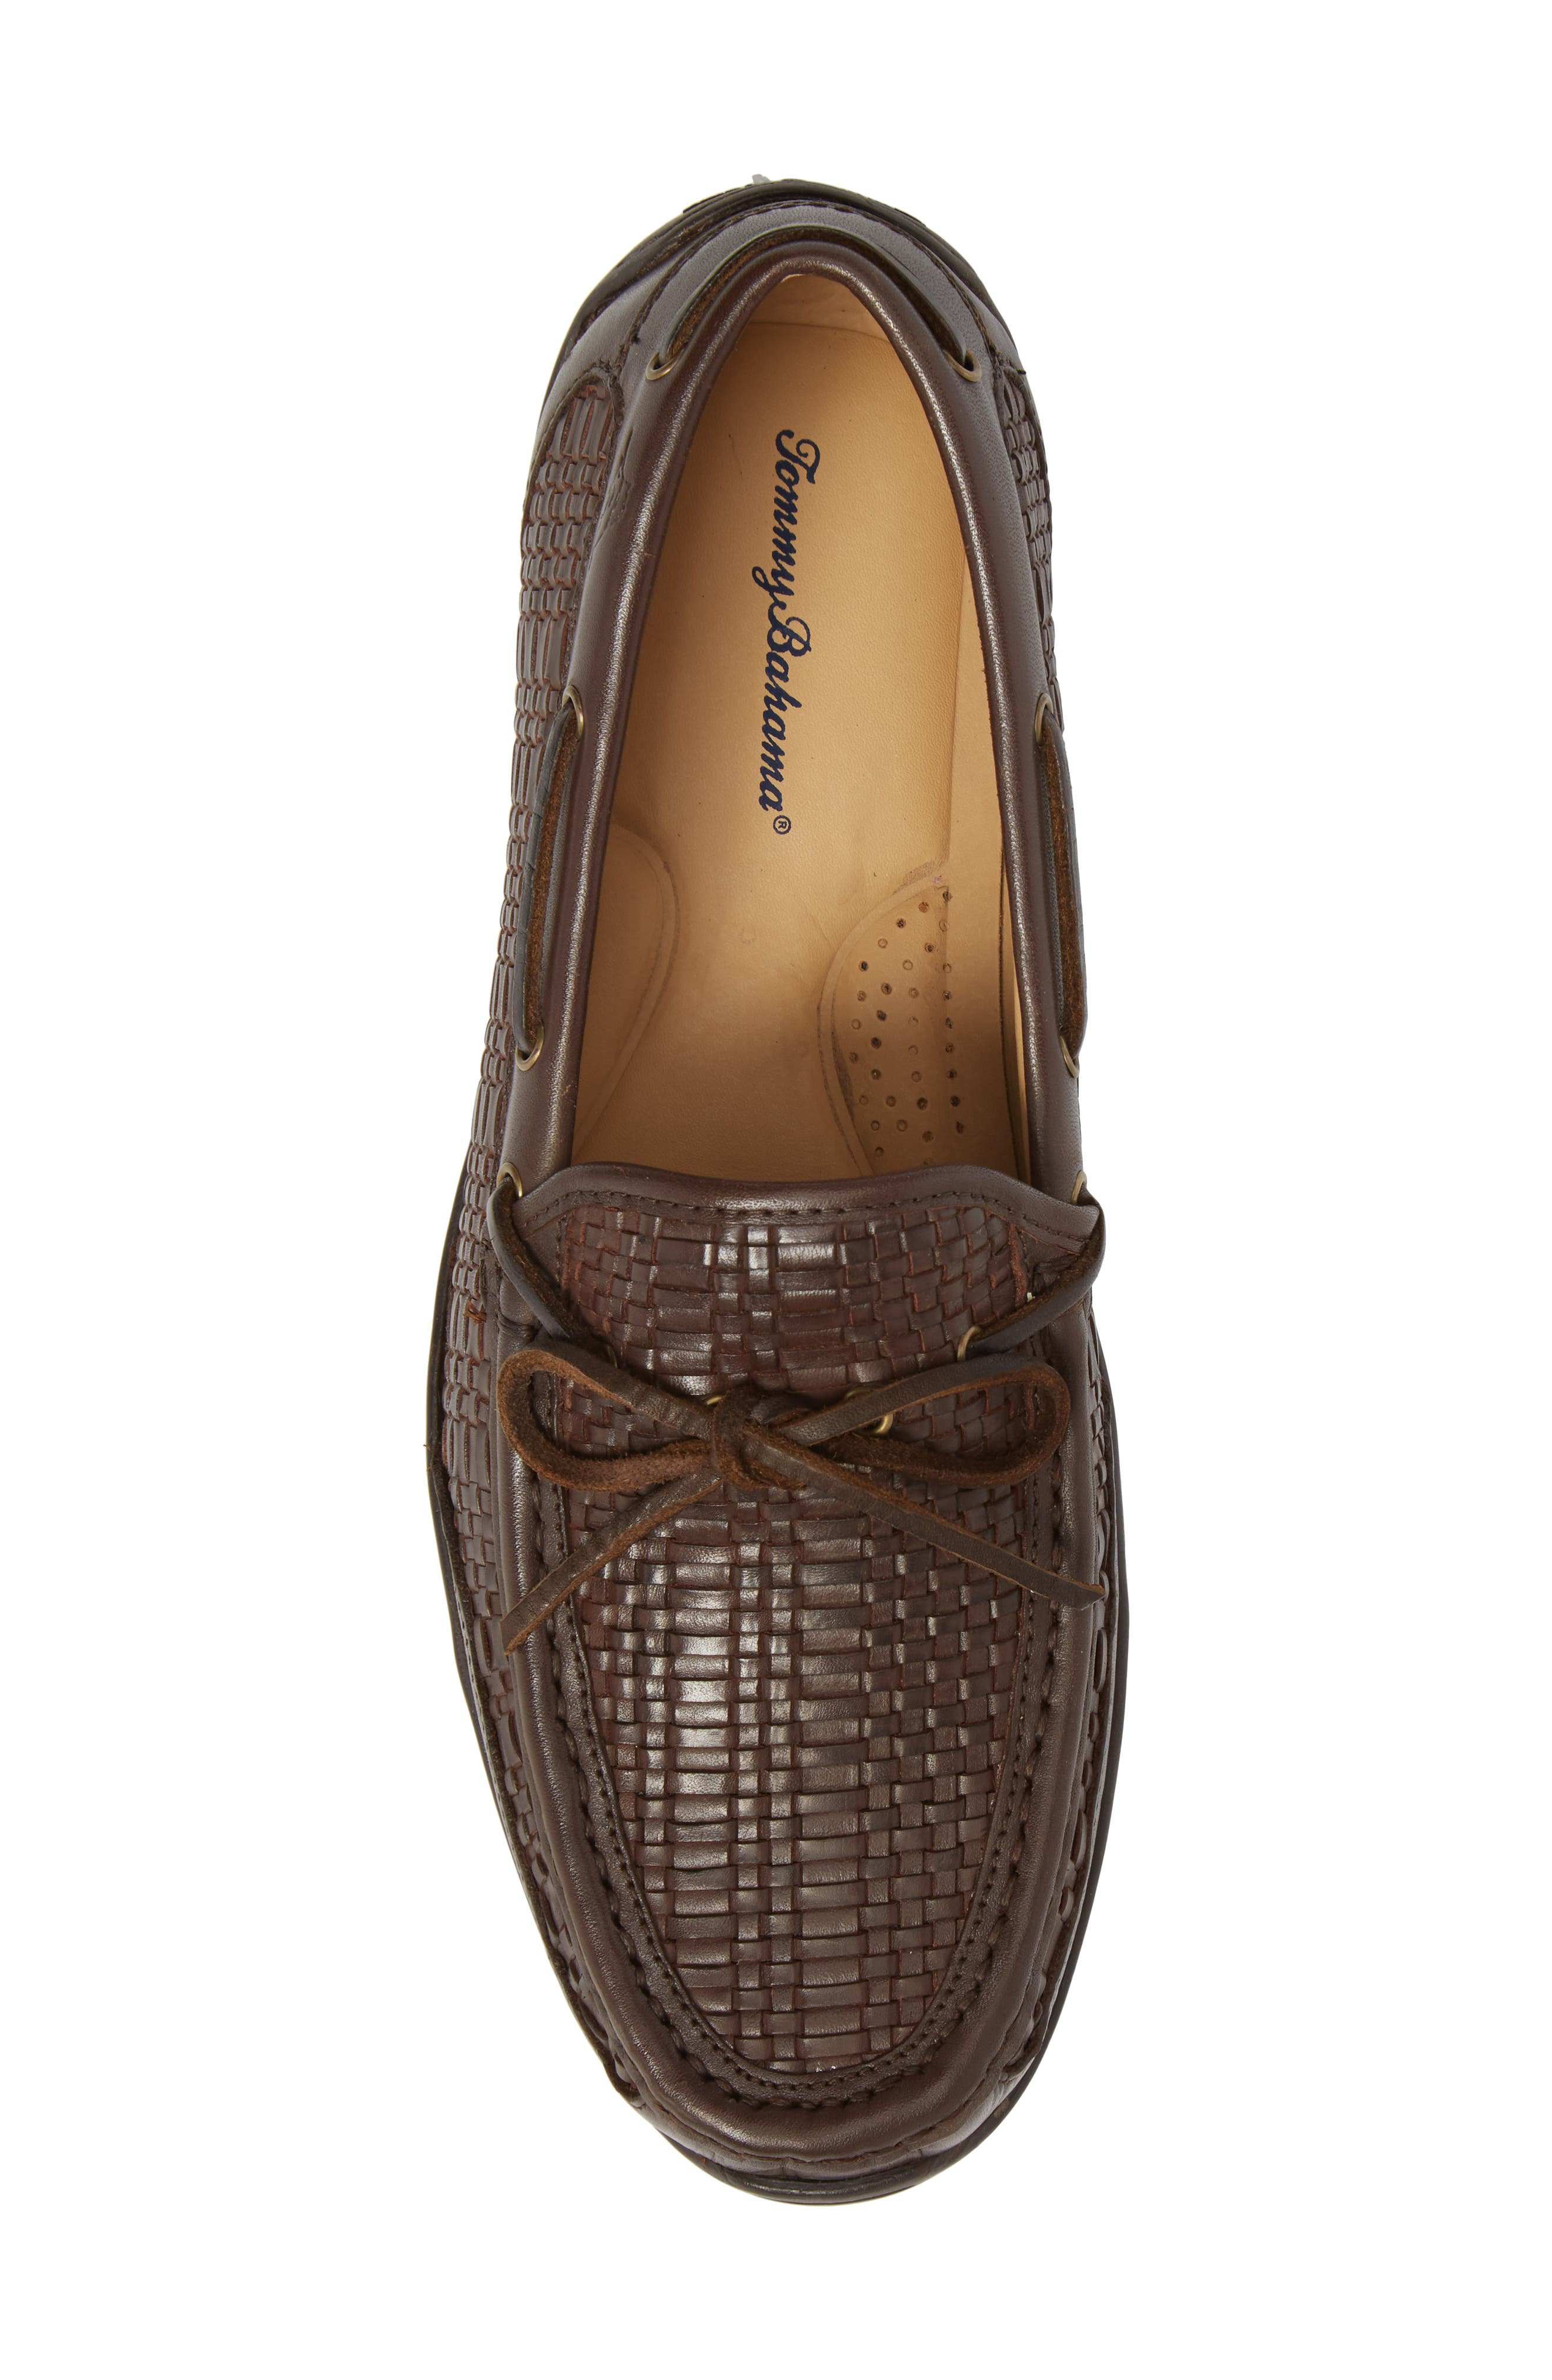 Tangier Driving Shoe,                             Alternate thumbnail 5, color,                             DARK BROWN WOVEN LEATHER